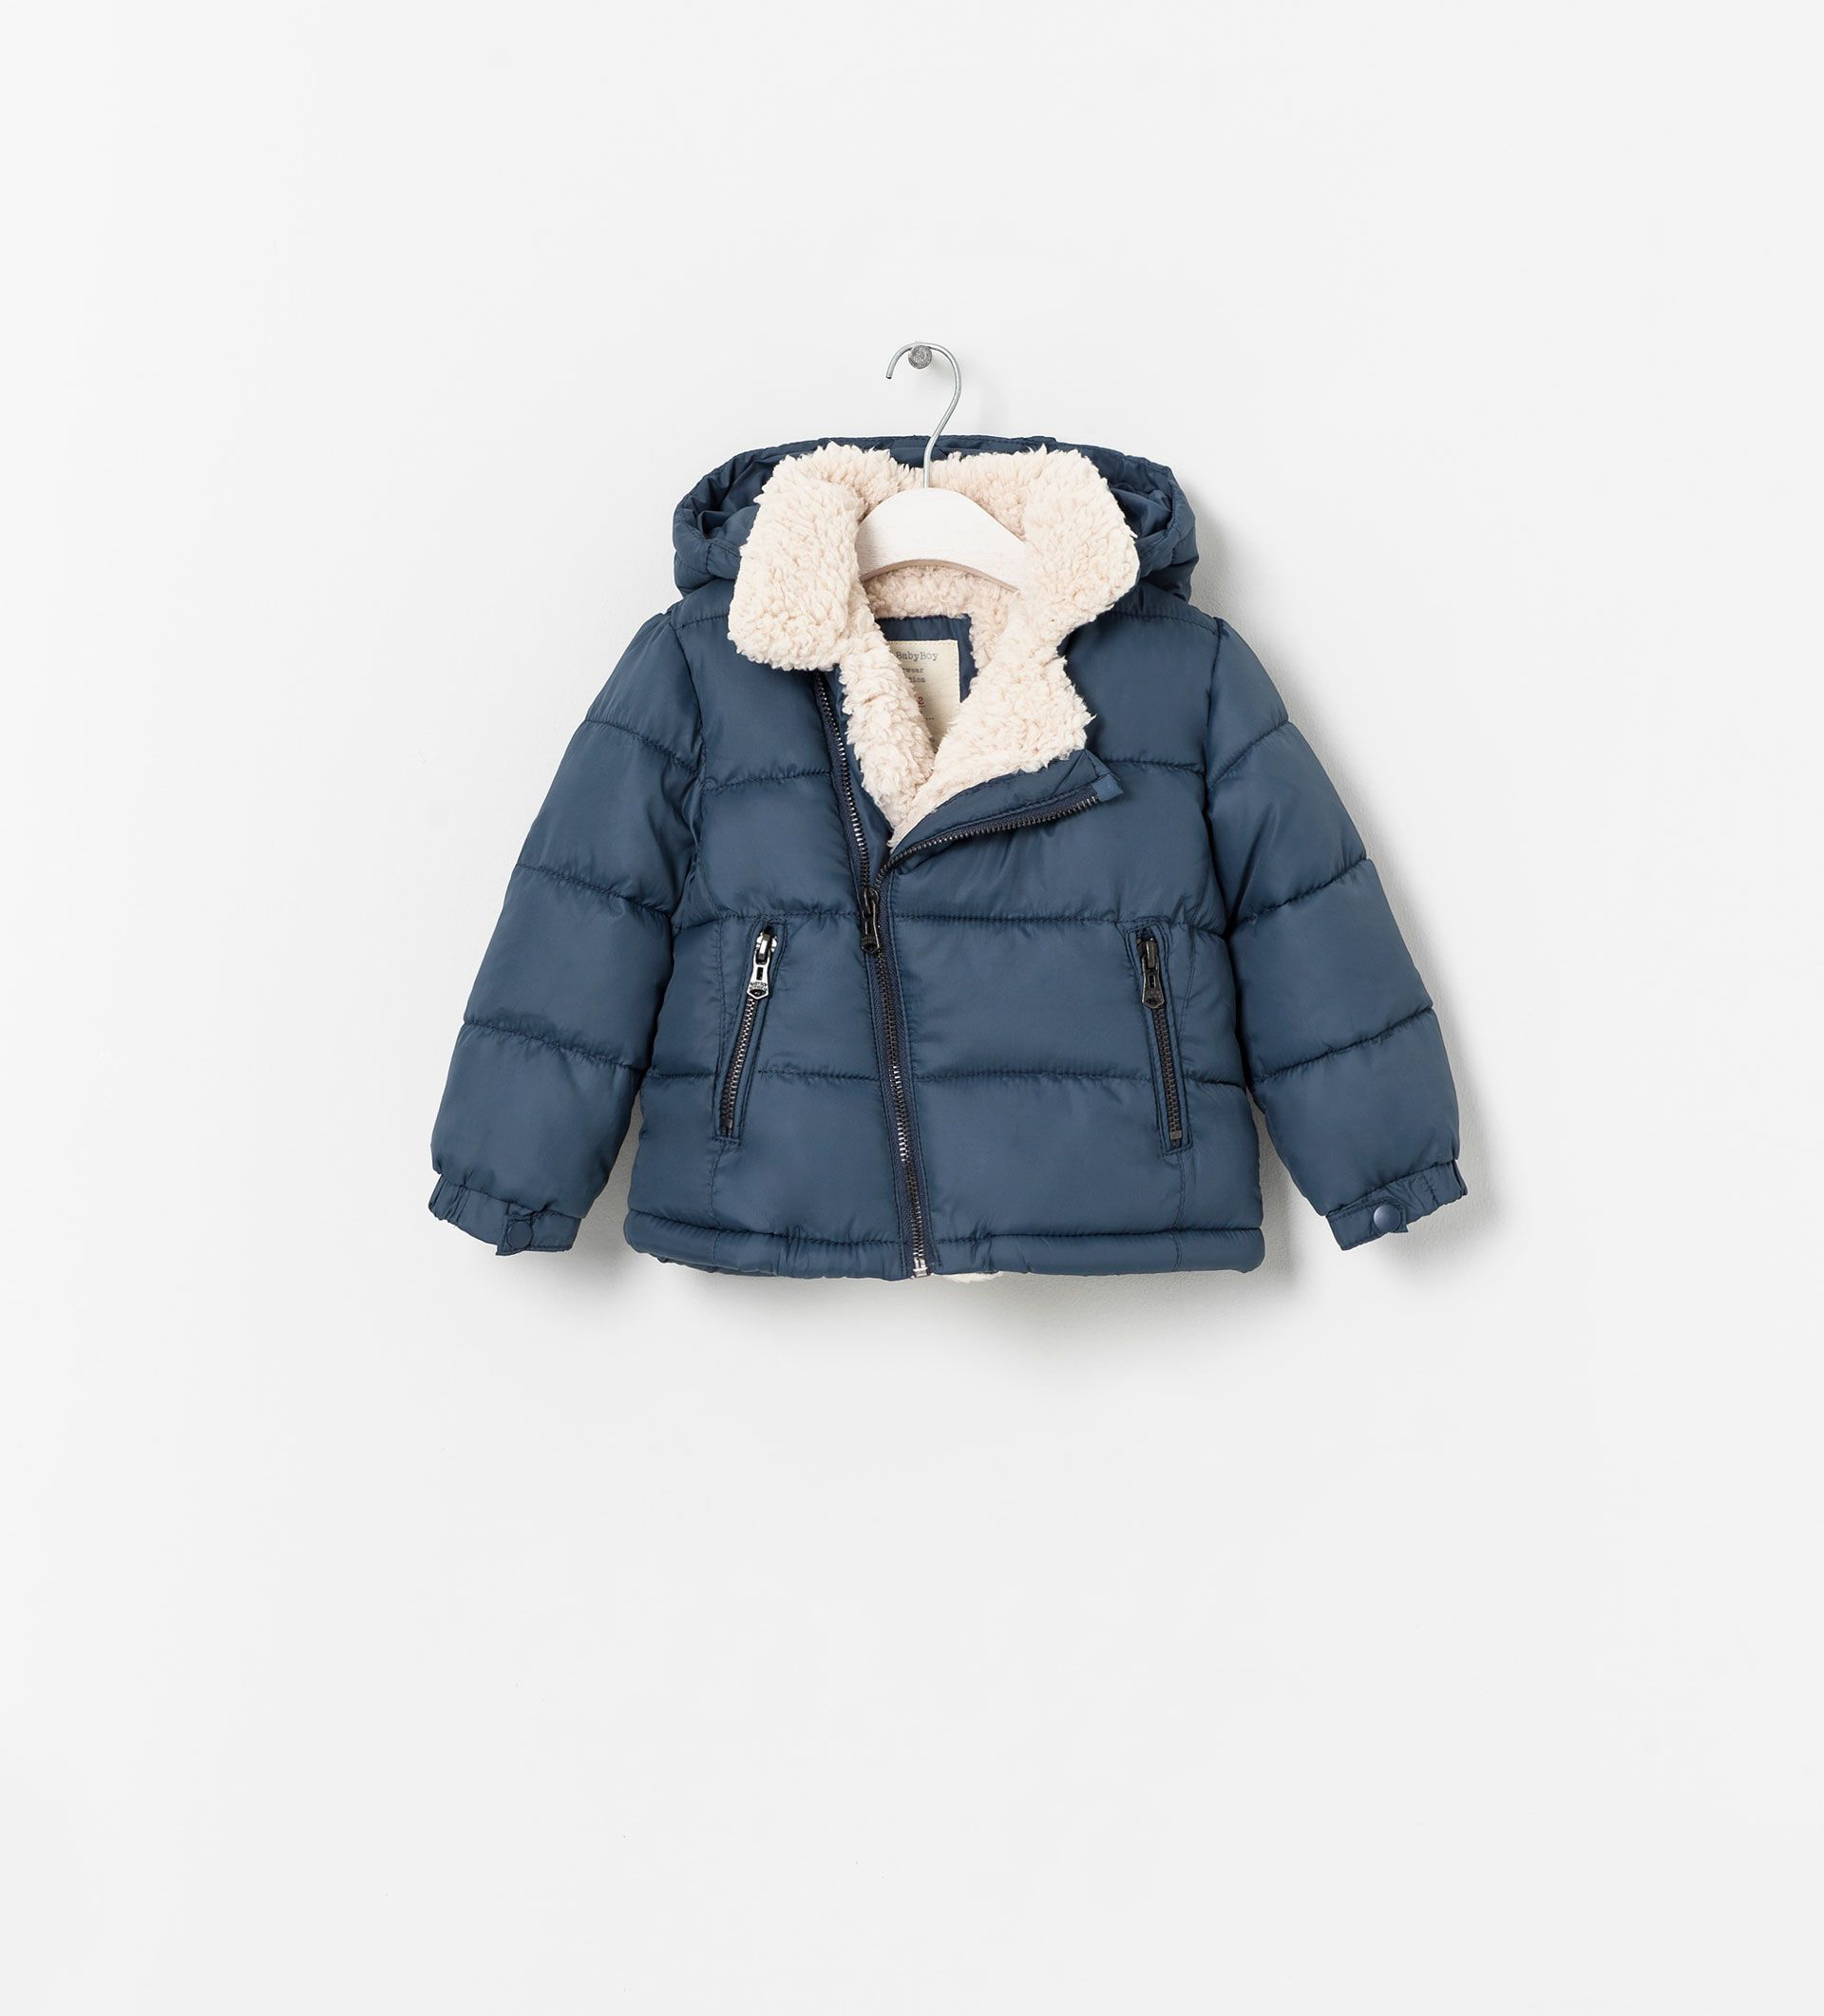 Zara Baby Boy Coat Cool Baby Clothes Trendy Baby Clothes Boy Outfits [ 2122 x 1920 Pixel ]